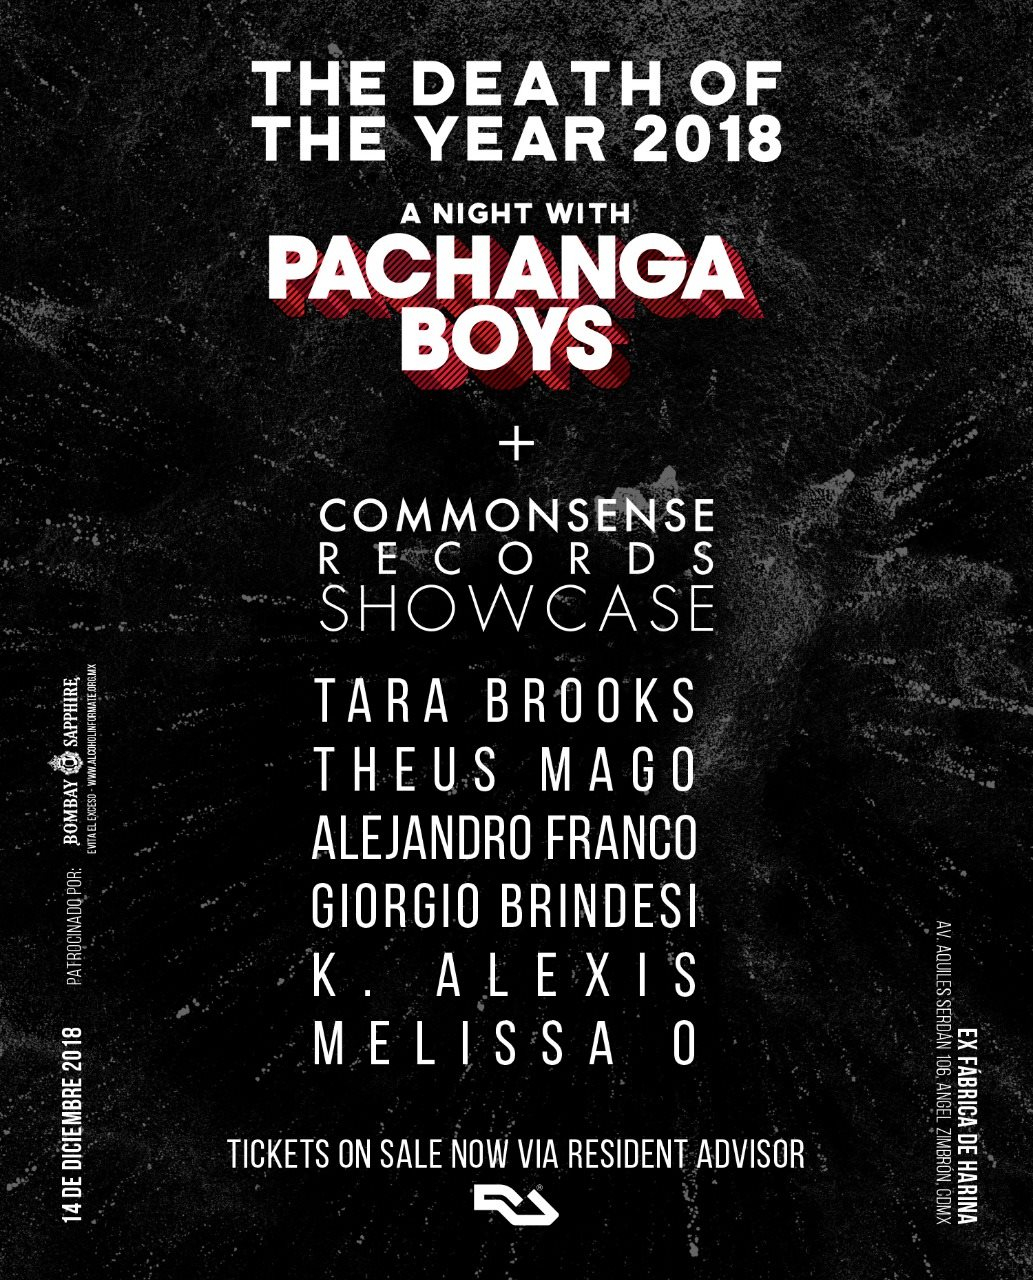 A Night with Pachanga Boys - The Death Of The Year 2018 - Flyer front